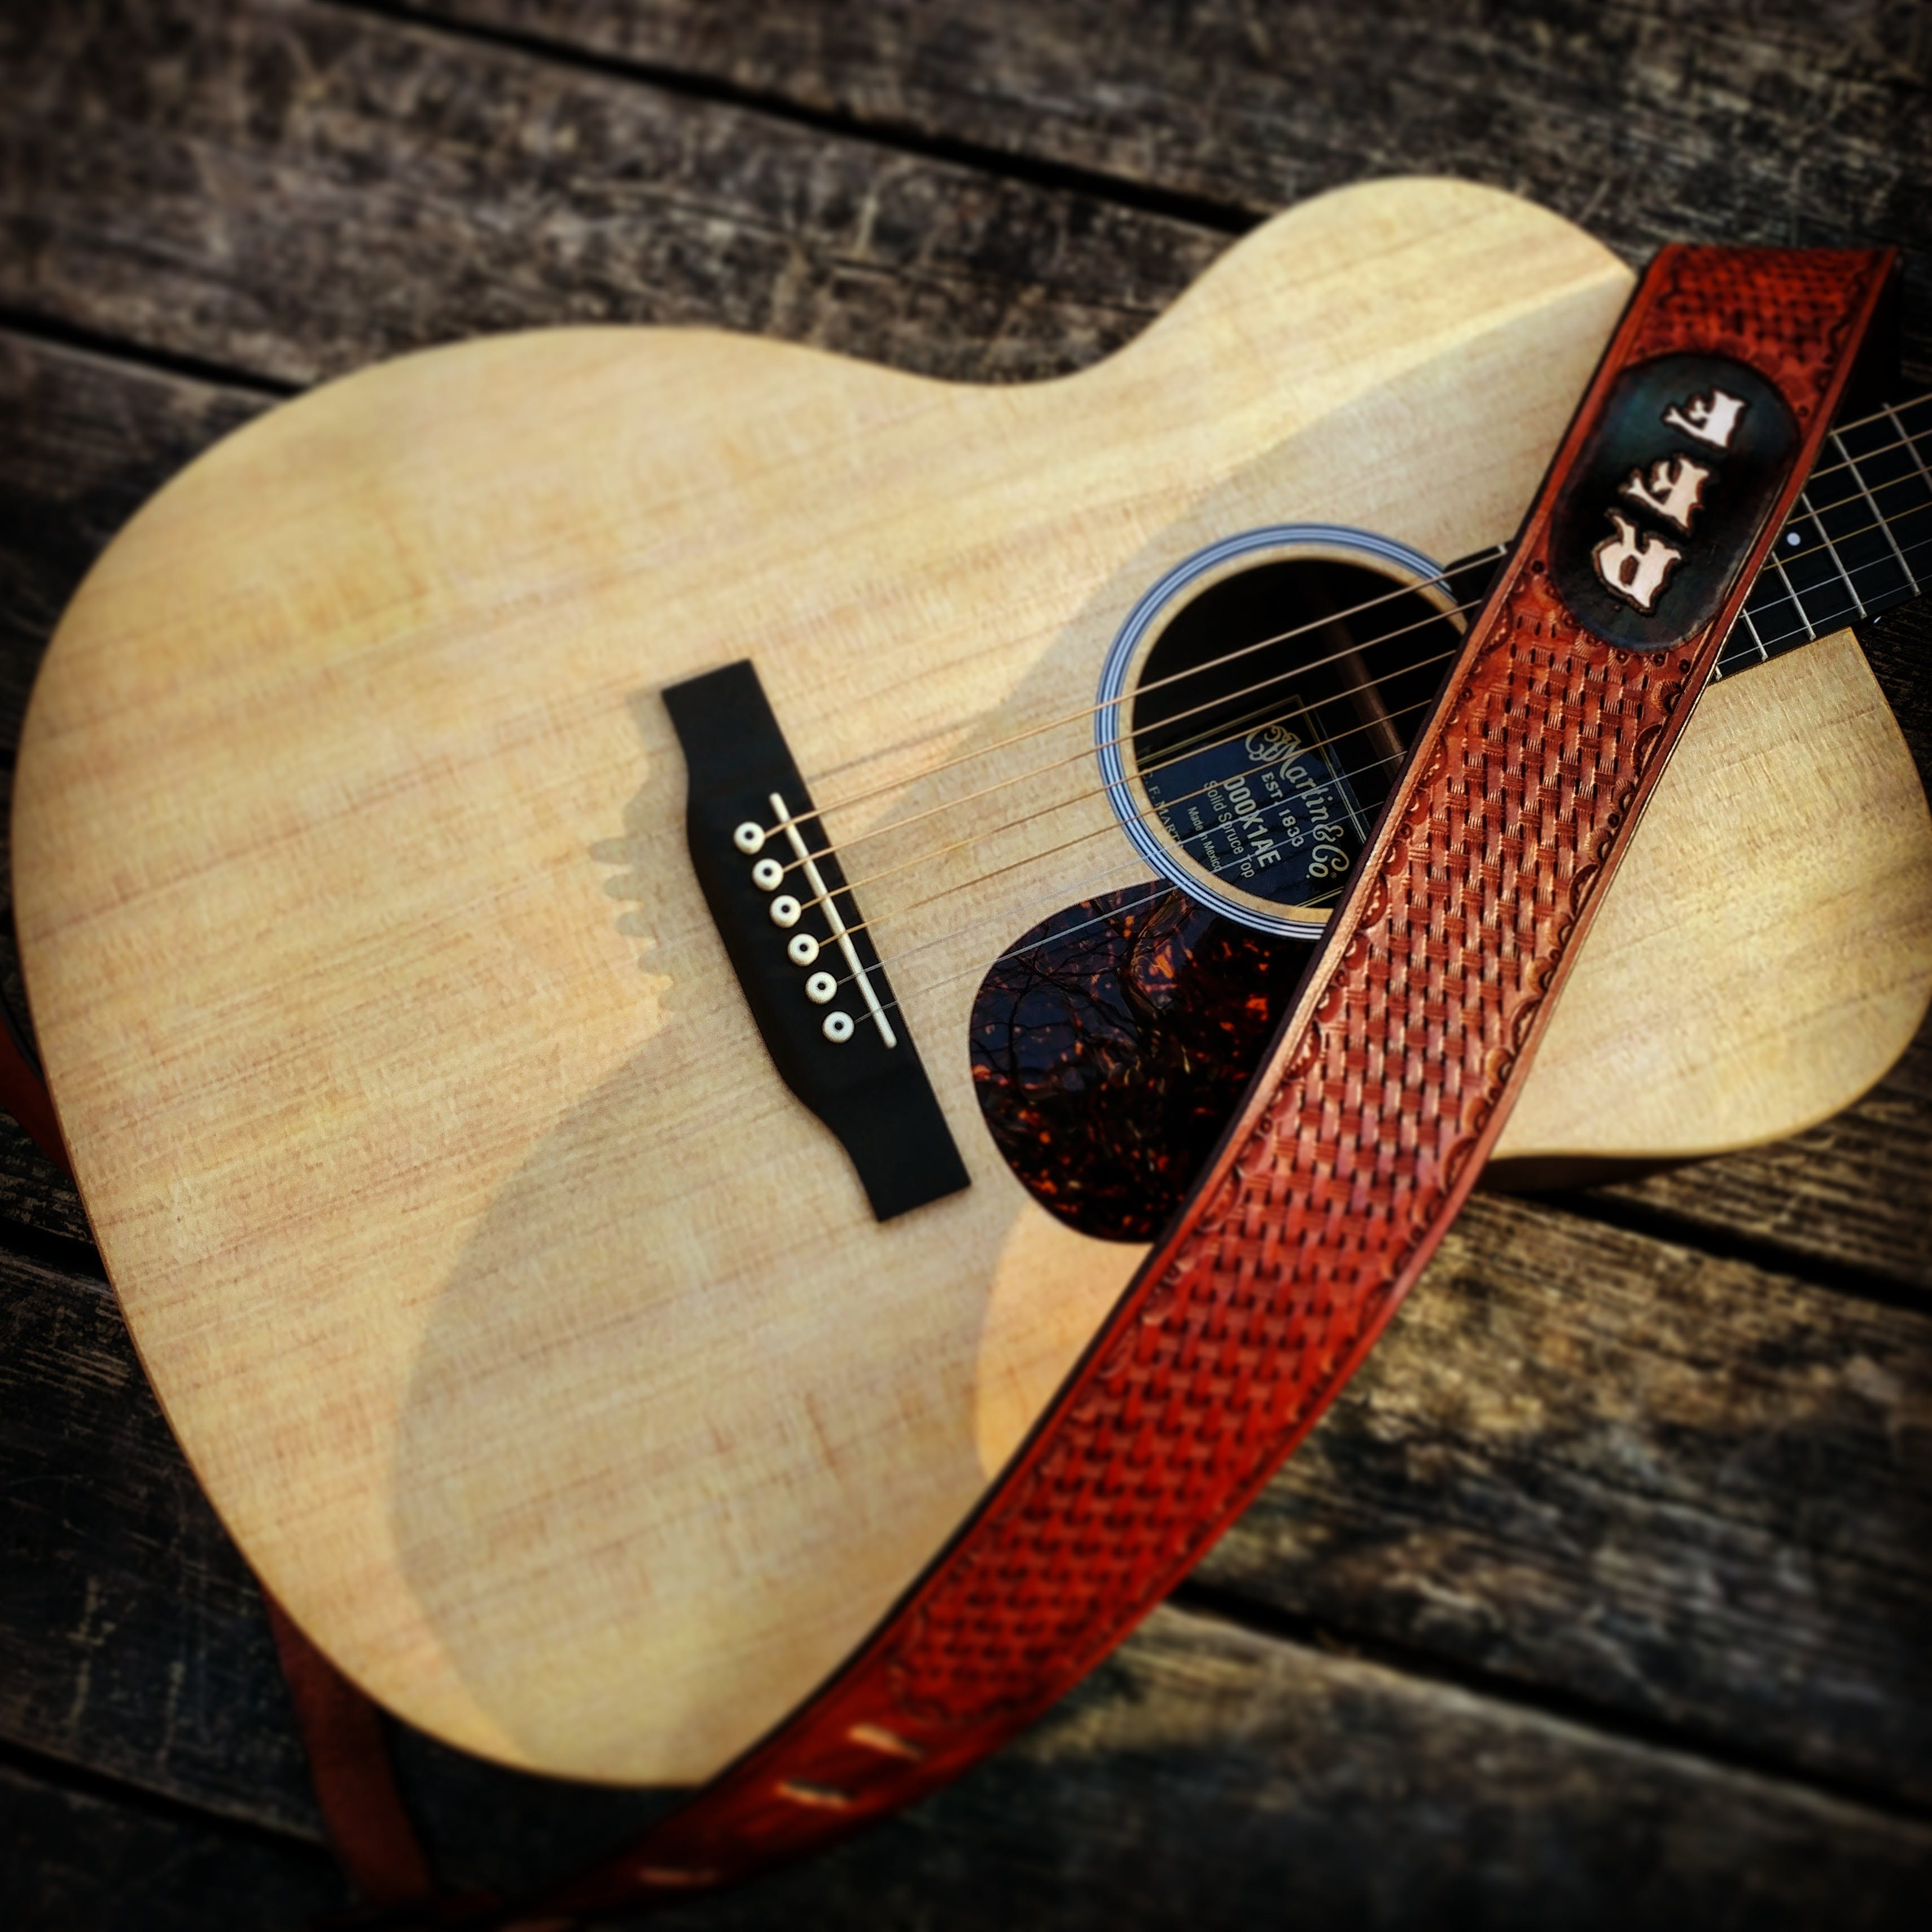 Free stock photo of #guitar #martin #acoustic #music #instrument